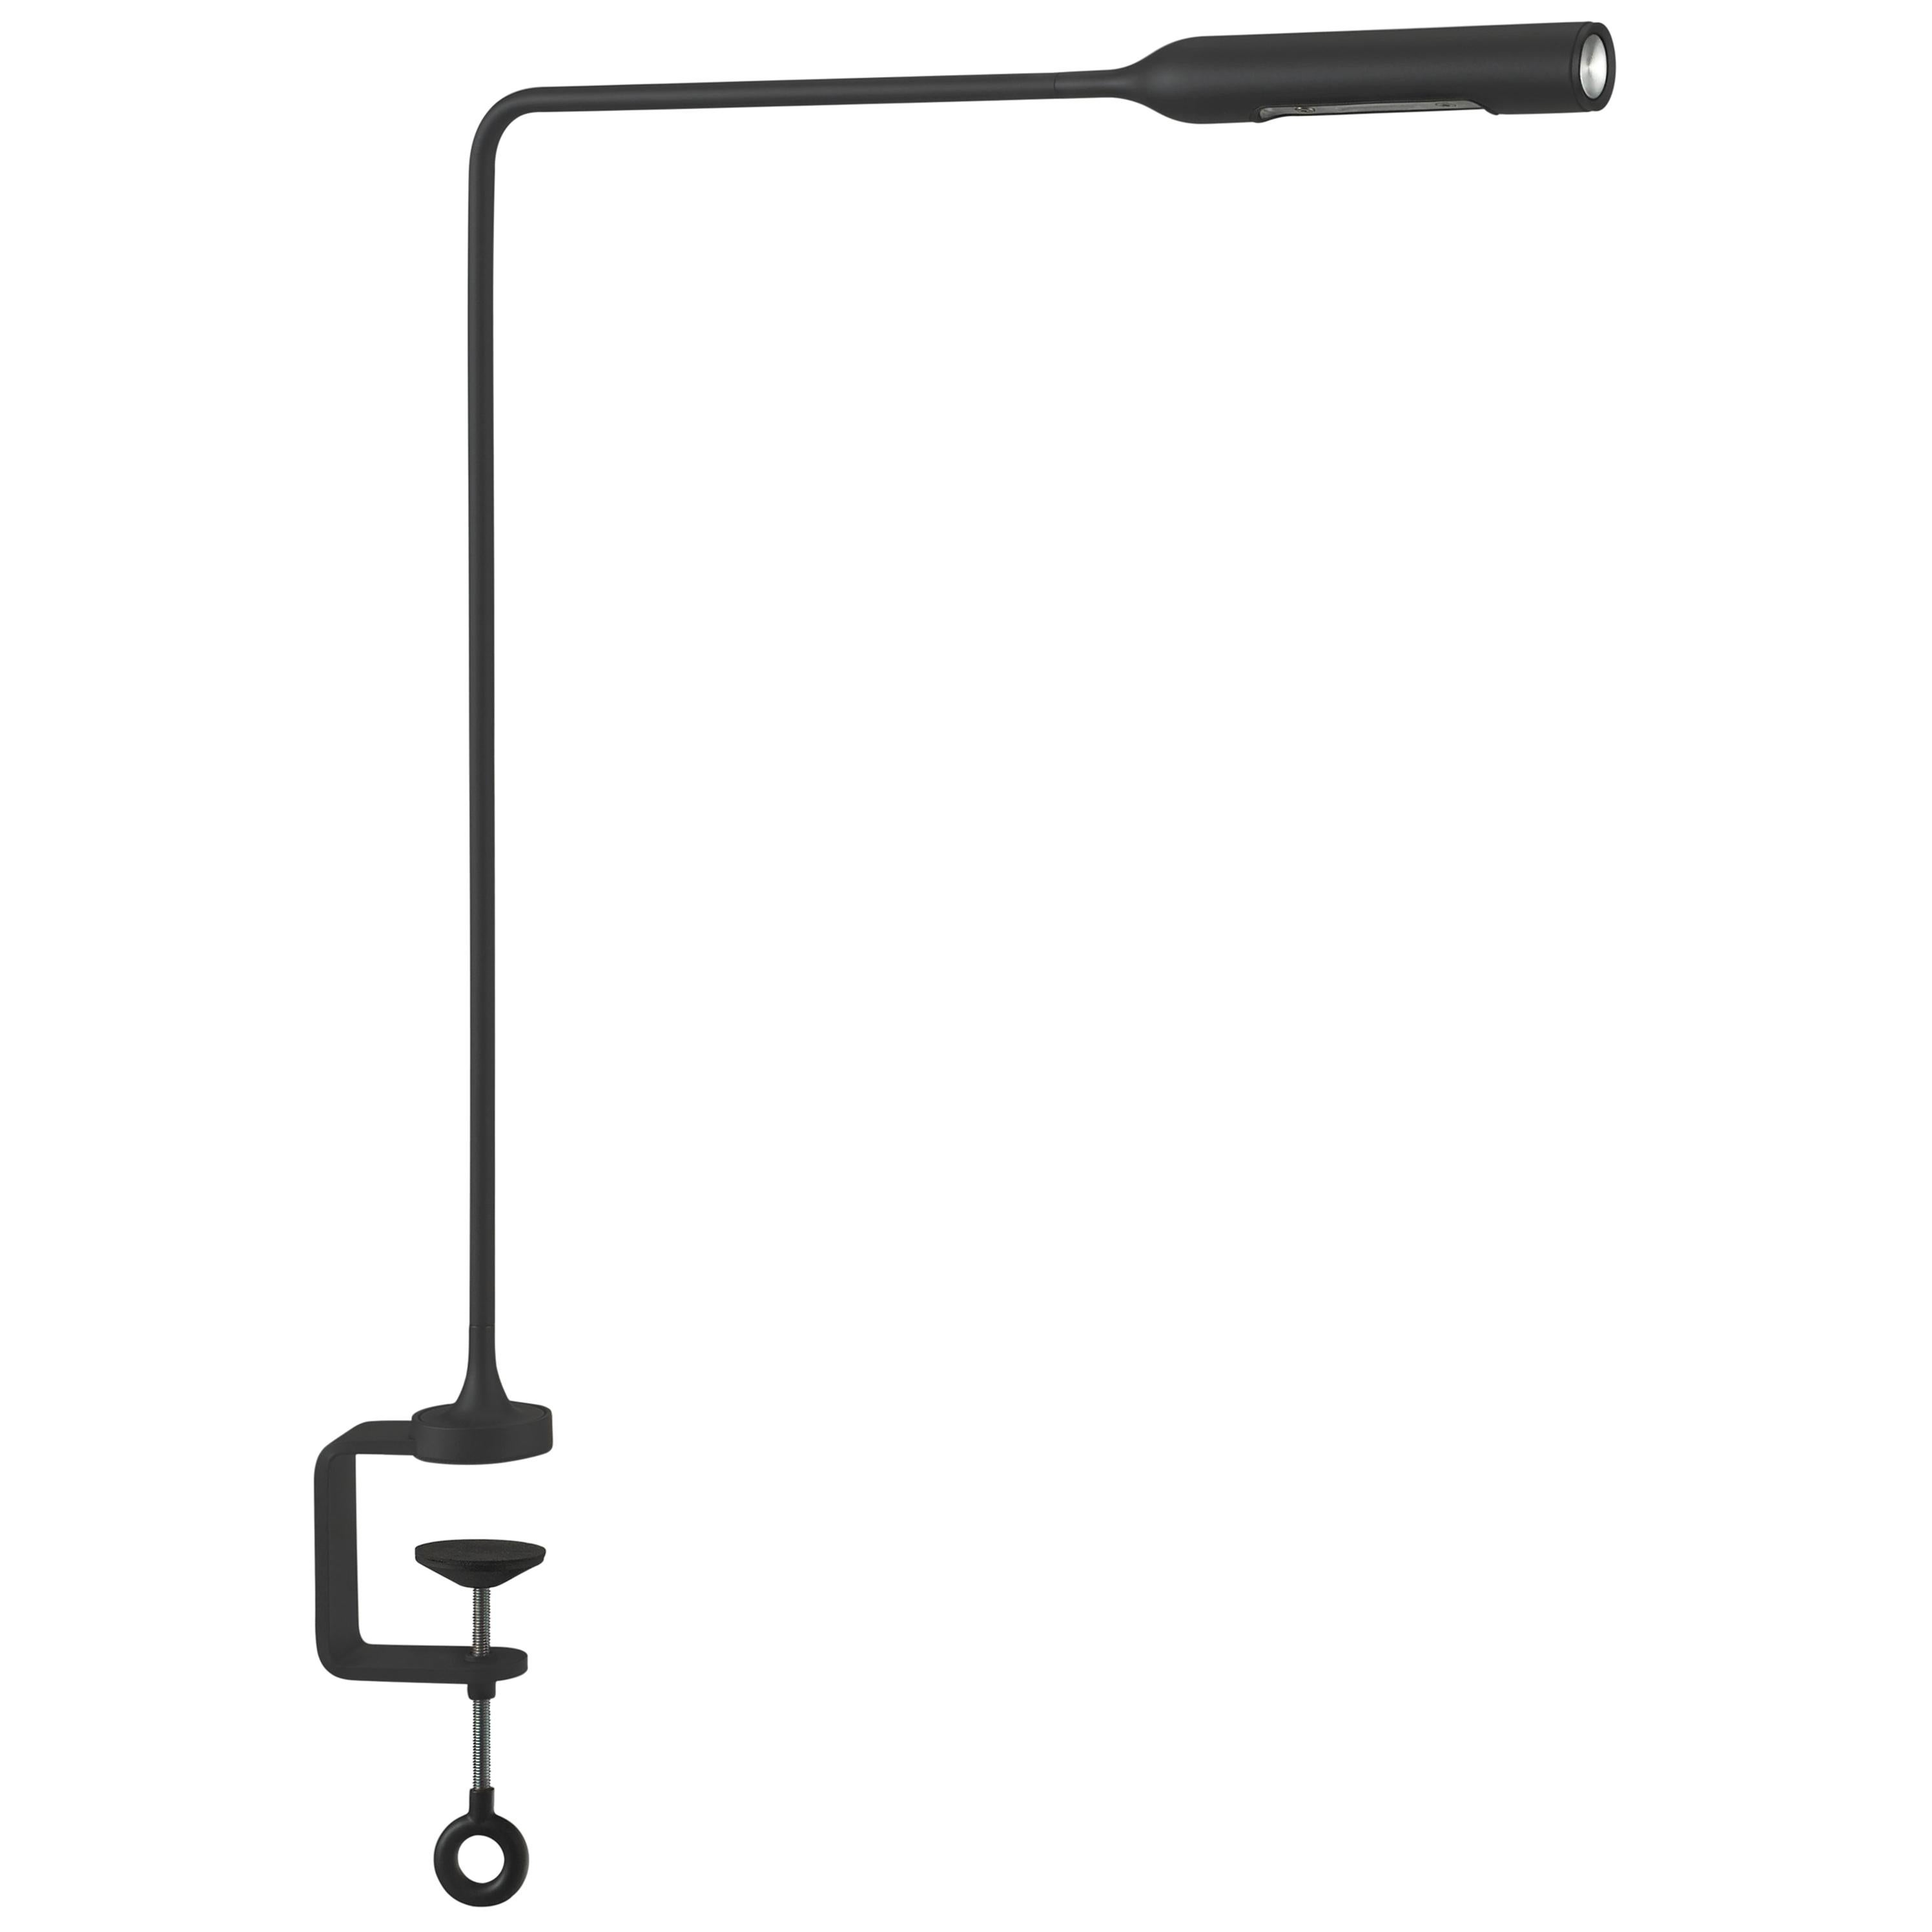 Lumina Flo Table Lamp with Clamp in Black Soft-Touch by Foster+Partners